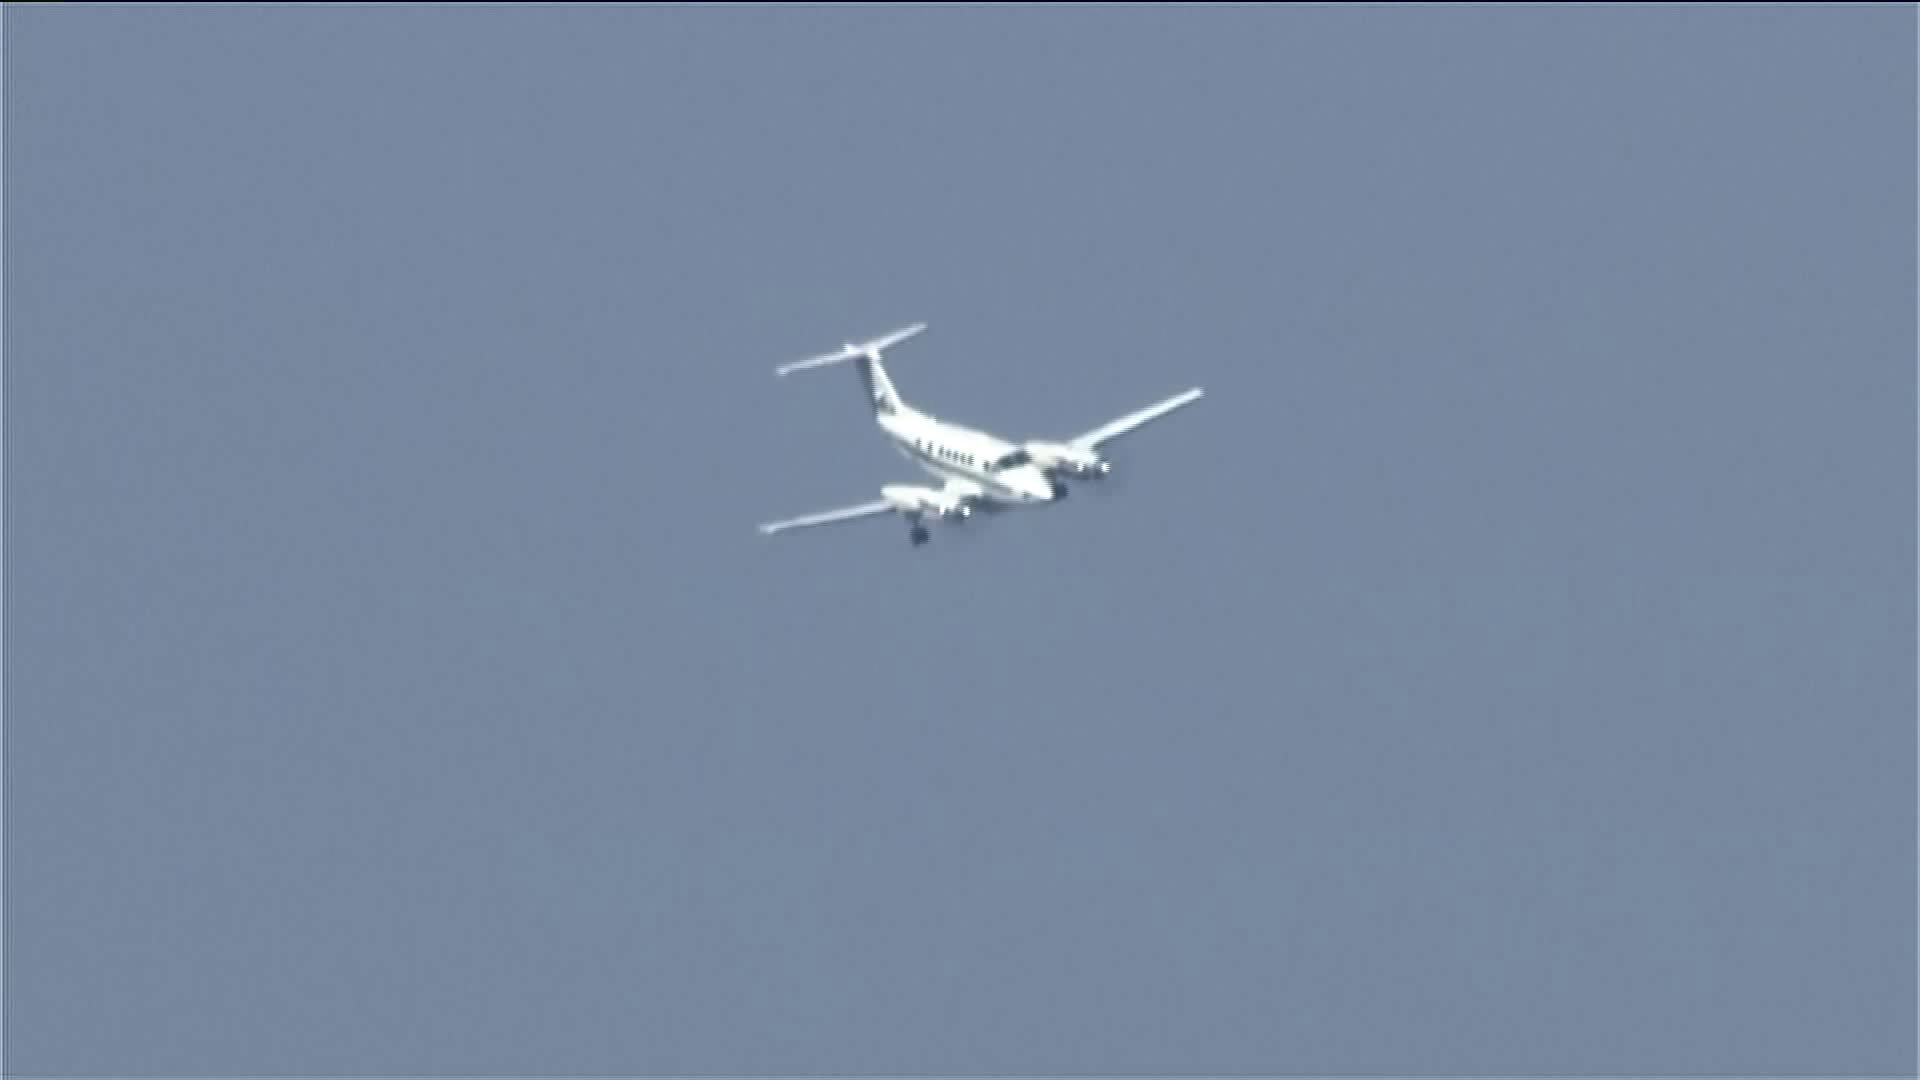 (1/4) Plane prepares to land at WRWA after experiencing landing gear malfunction